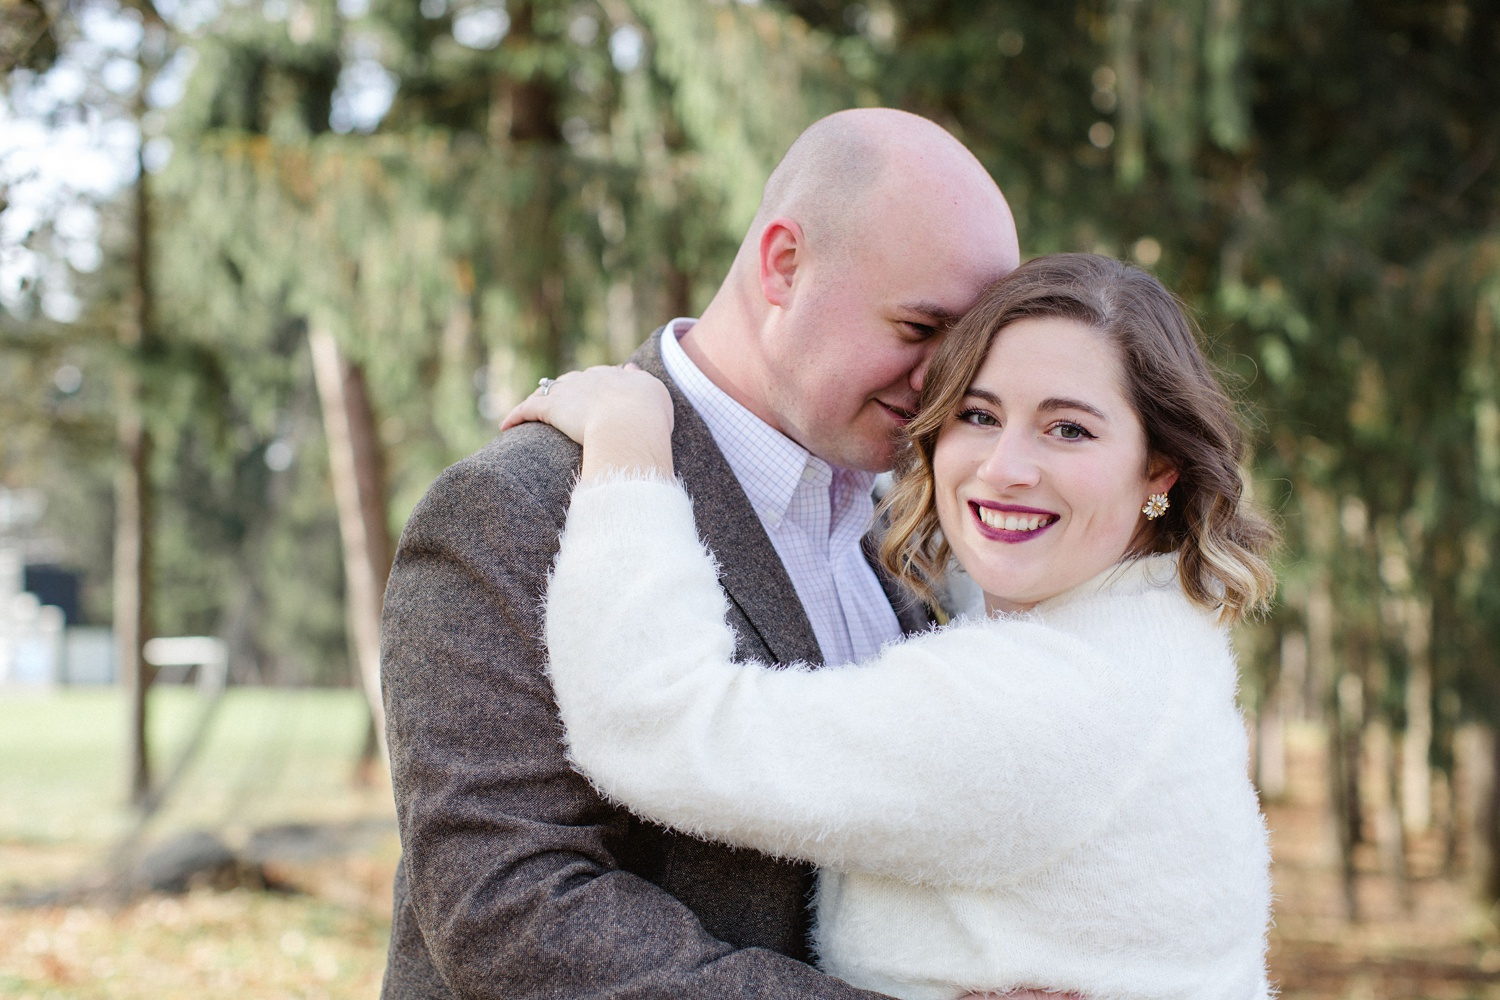 Clarks Summit PA Engagement Session Anniversary Photos_0020.jpg